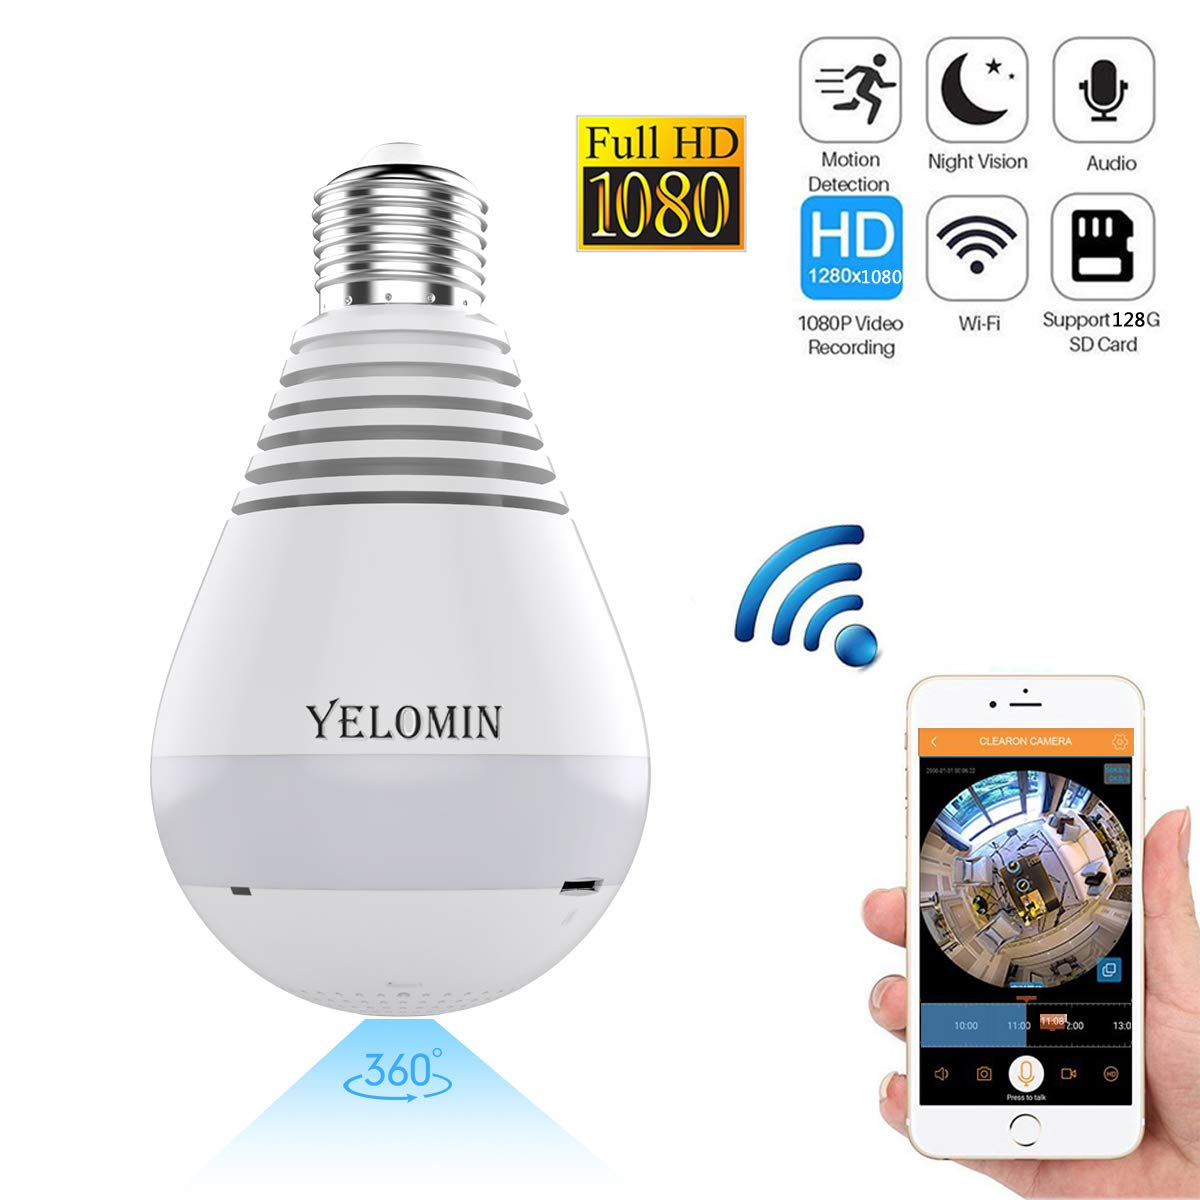 1080P WiFi Secuity Bulb Camera,HD Wireless IP Camera Night Vision VR Panoramic,Motion Detection with Two-way Audio for Android IOS APP 360 Degree Fisheye Home Surveillance System Remote View (white)